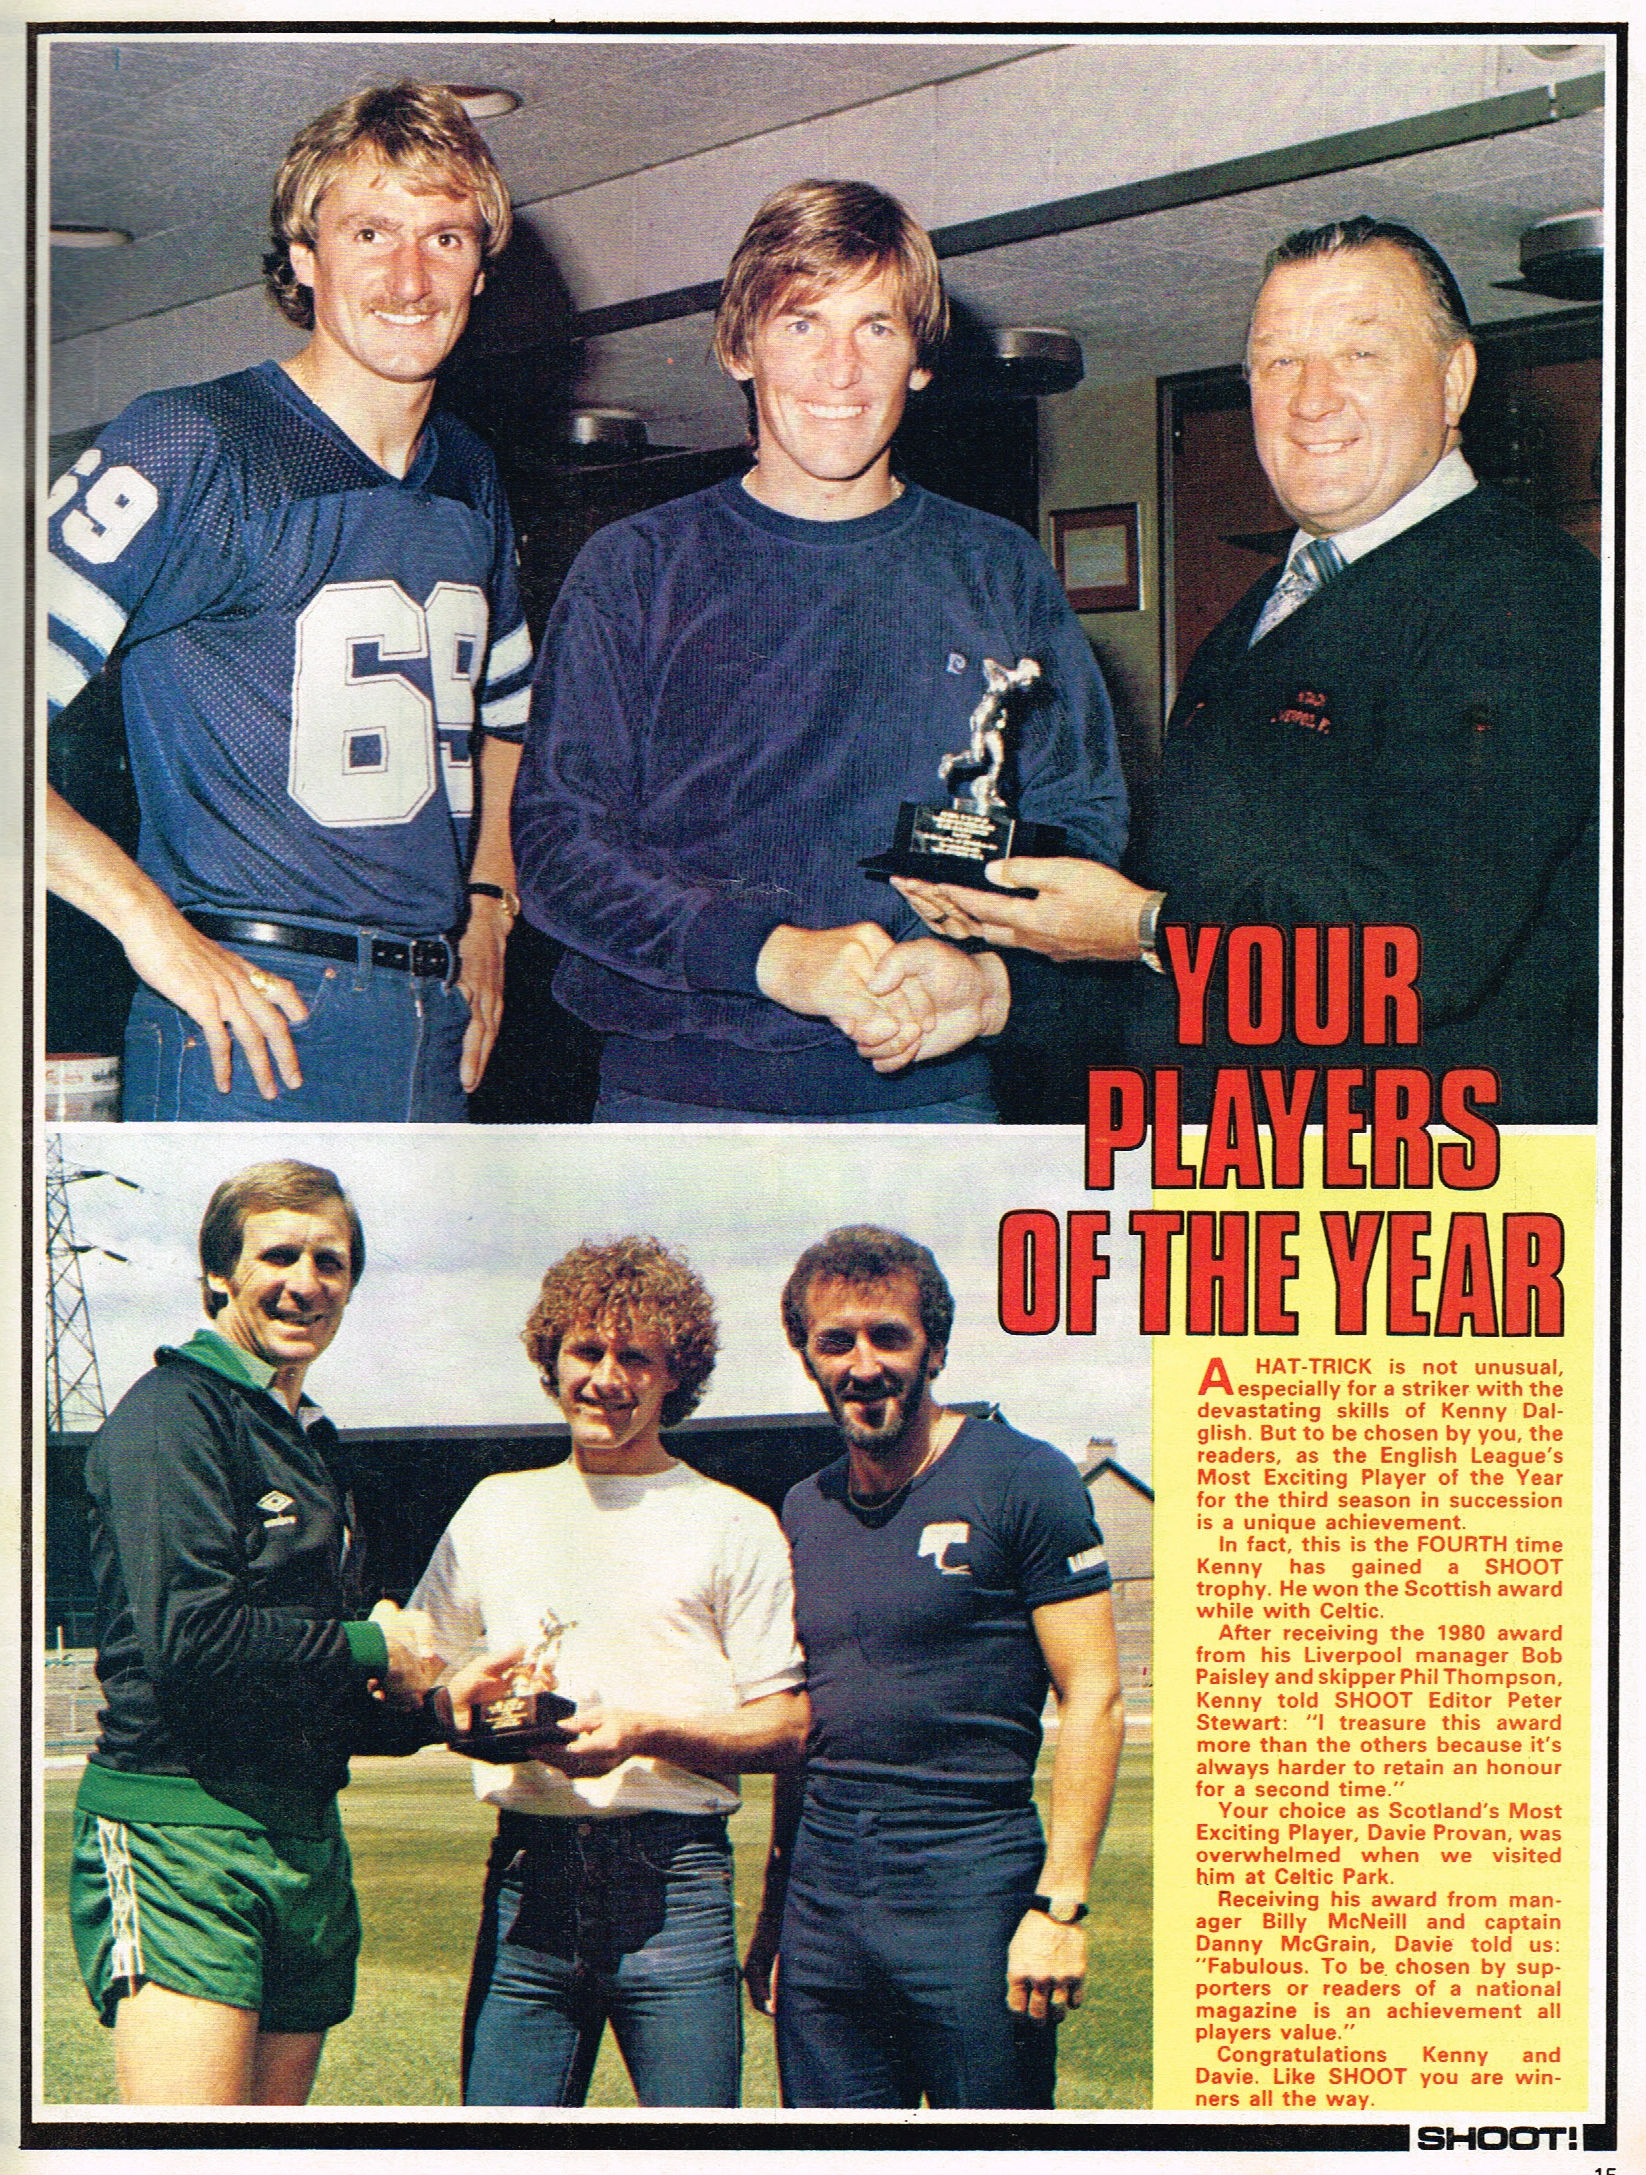 Your players of the year 23 August 1980